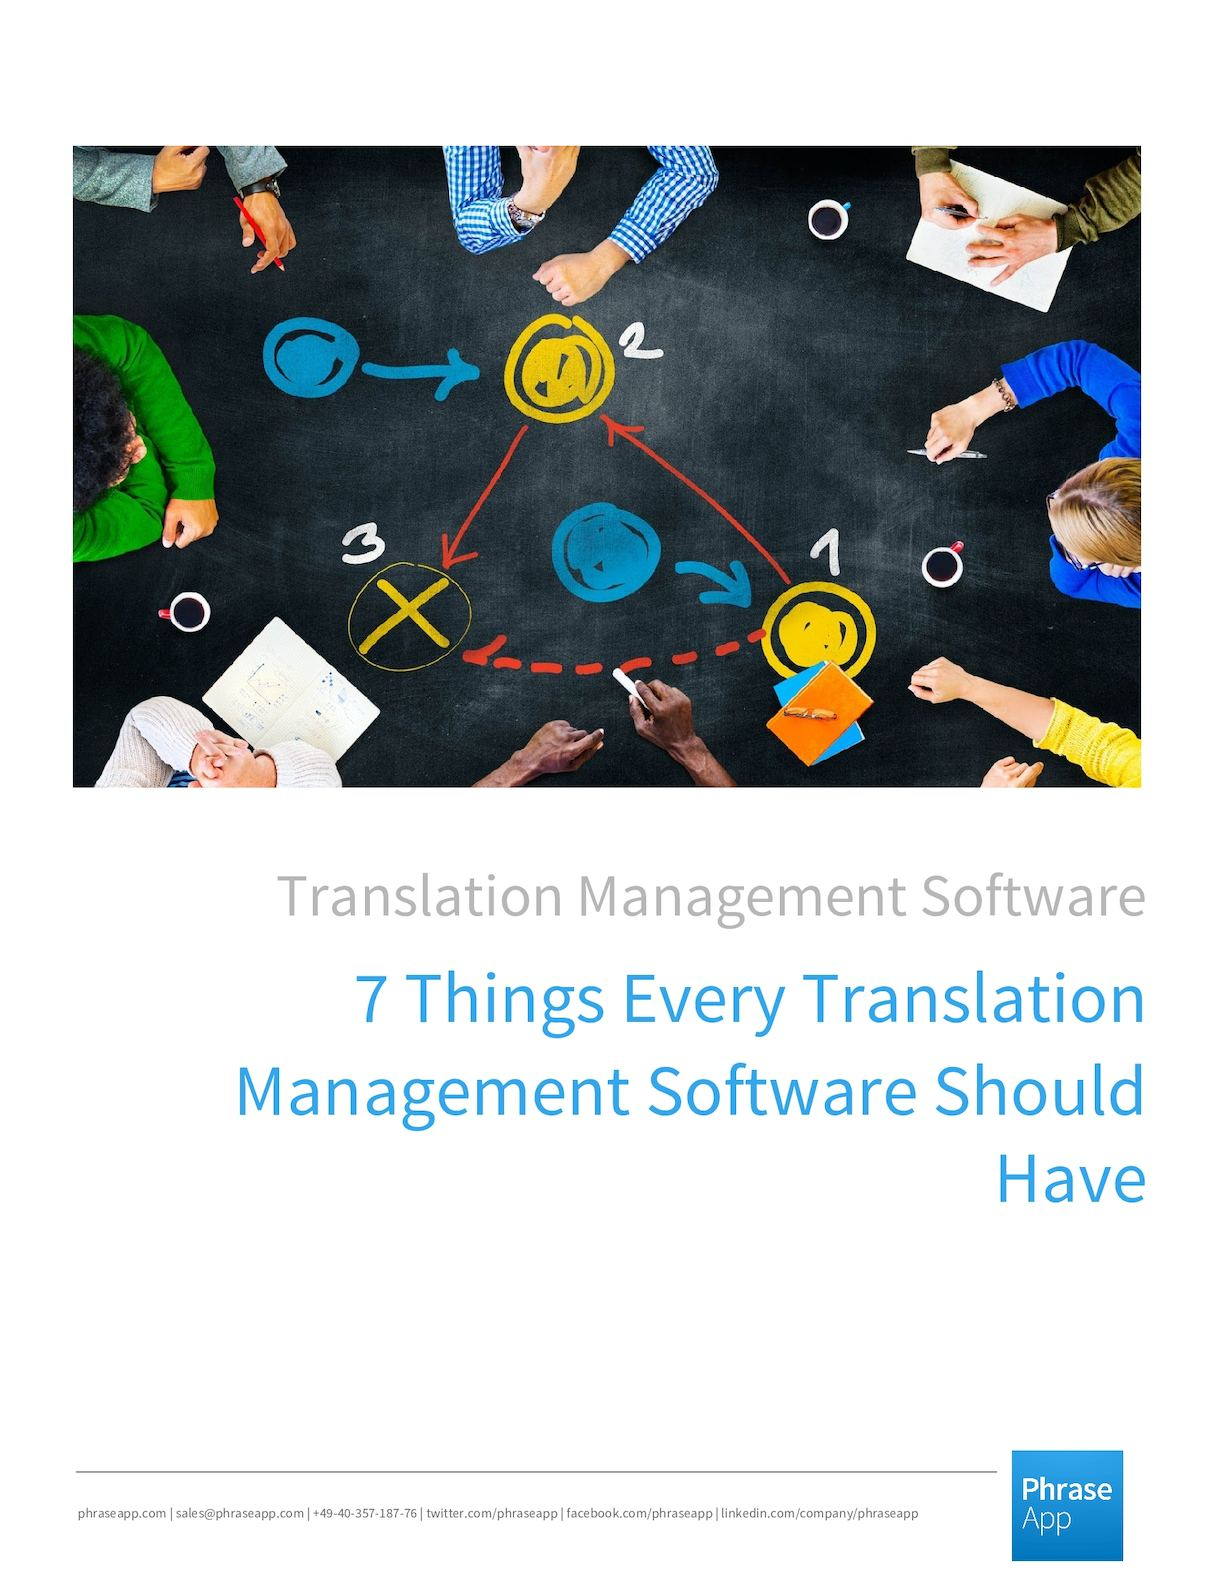 7things Every Translation Management Software Should Have